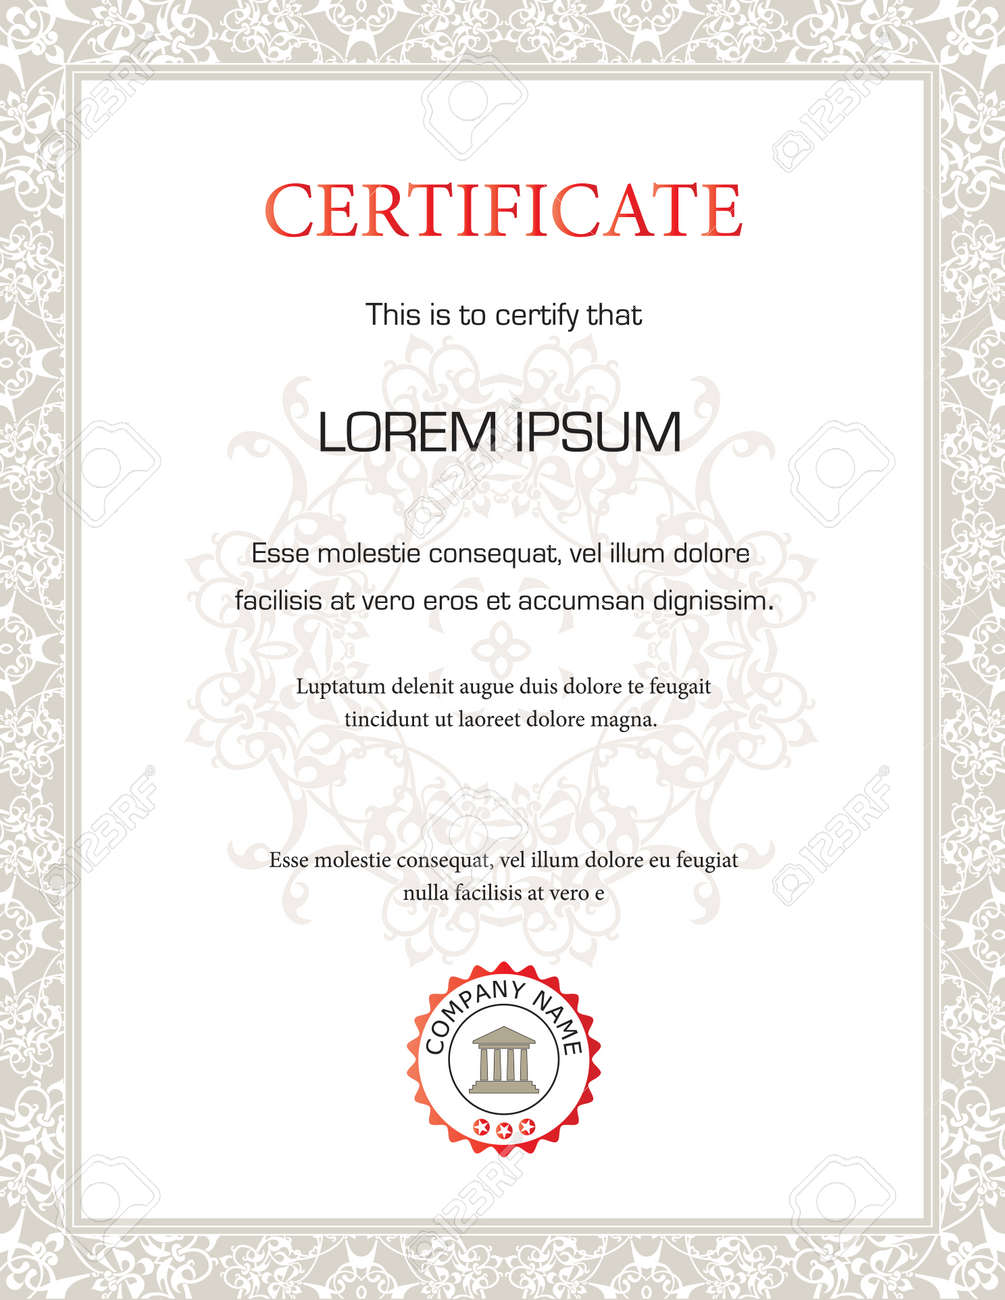 Vertical Certificate Template General Purpose Royalty Free - Electronic stock certificate template